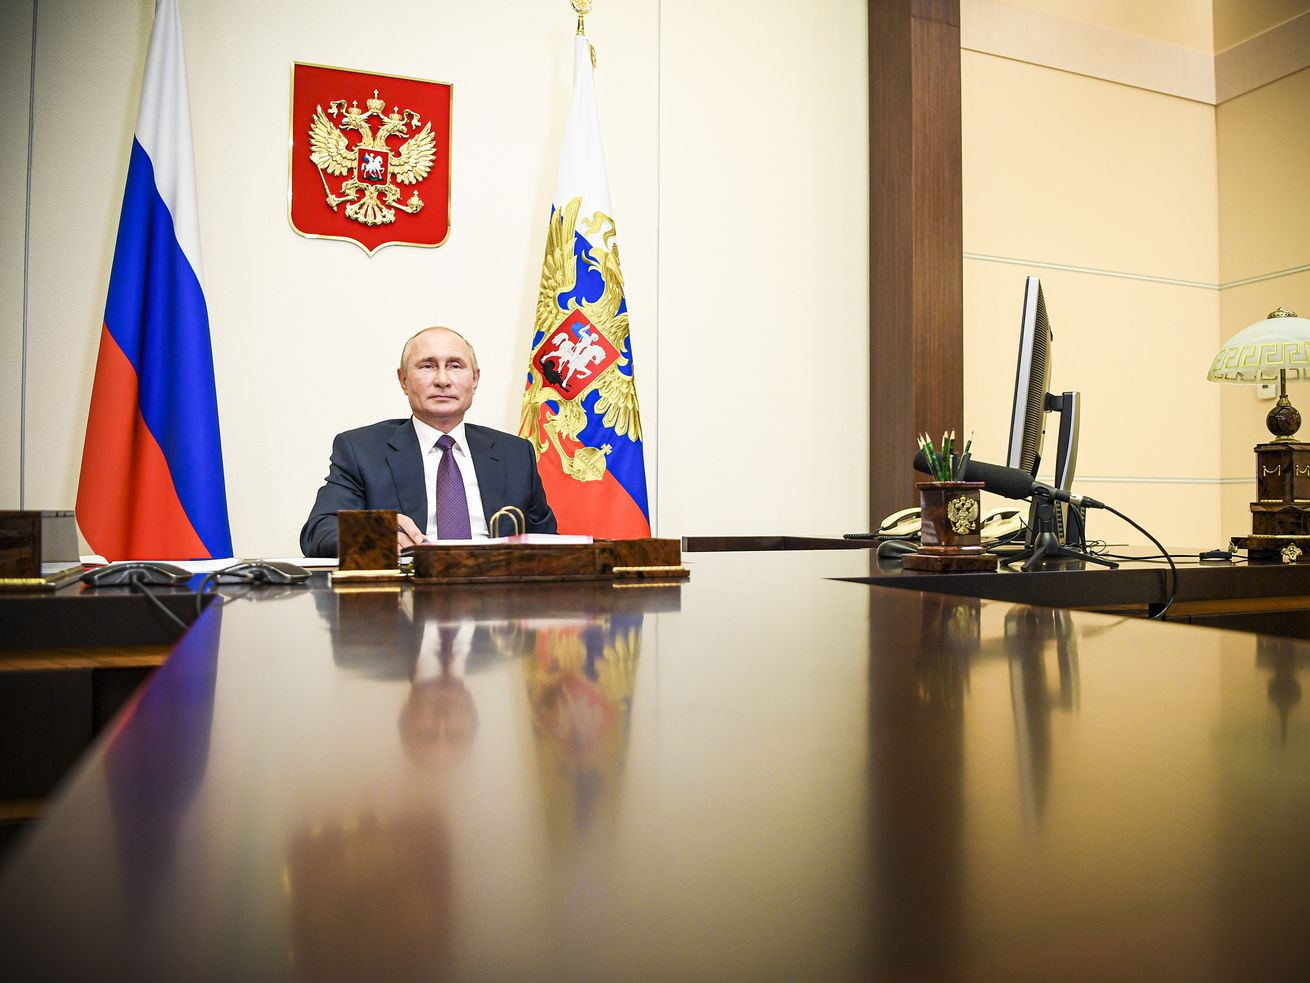 Russia's President Vladimir Putin sitting at a desk during a video conference meeting.